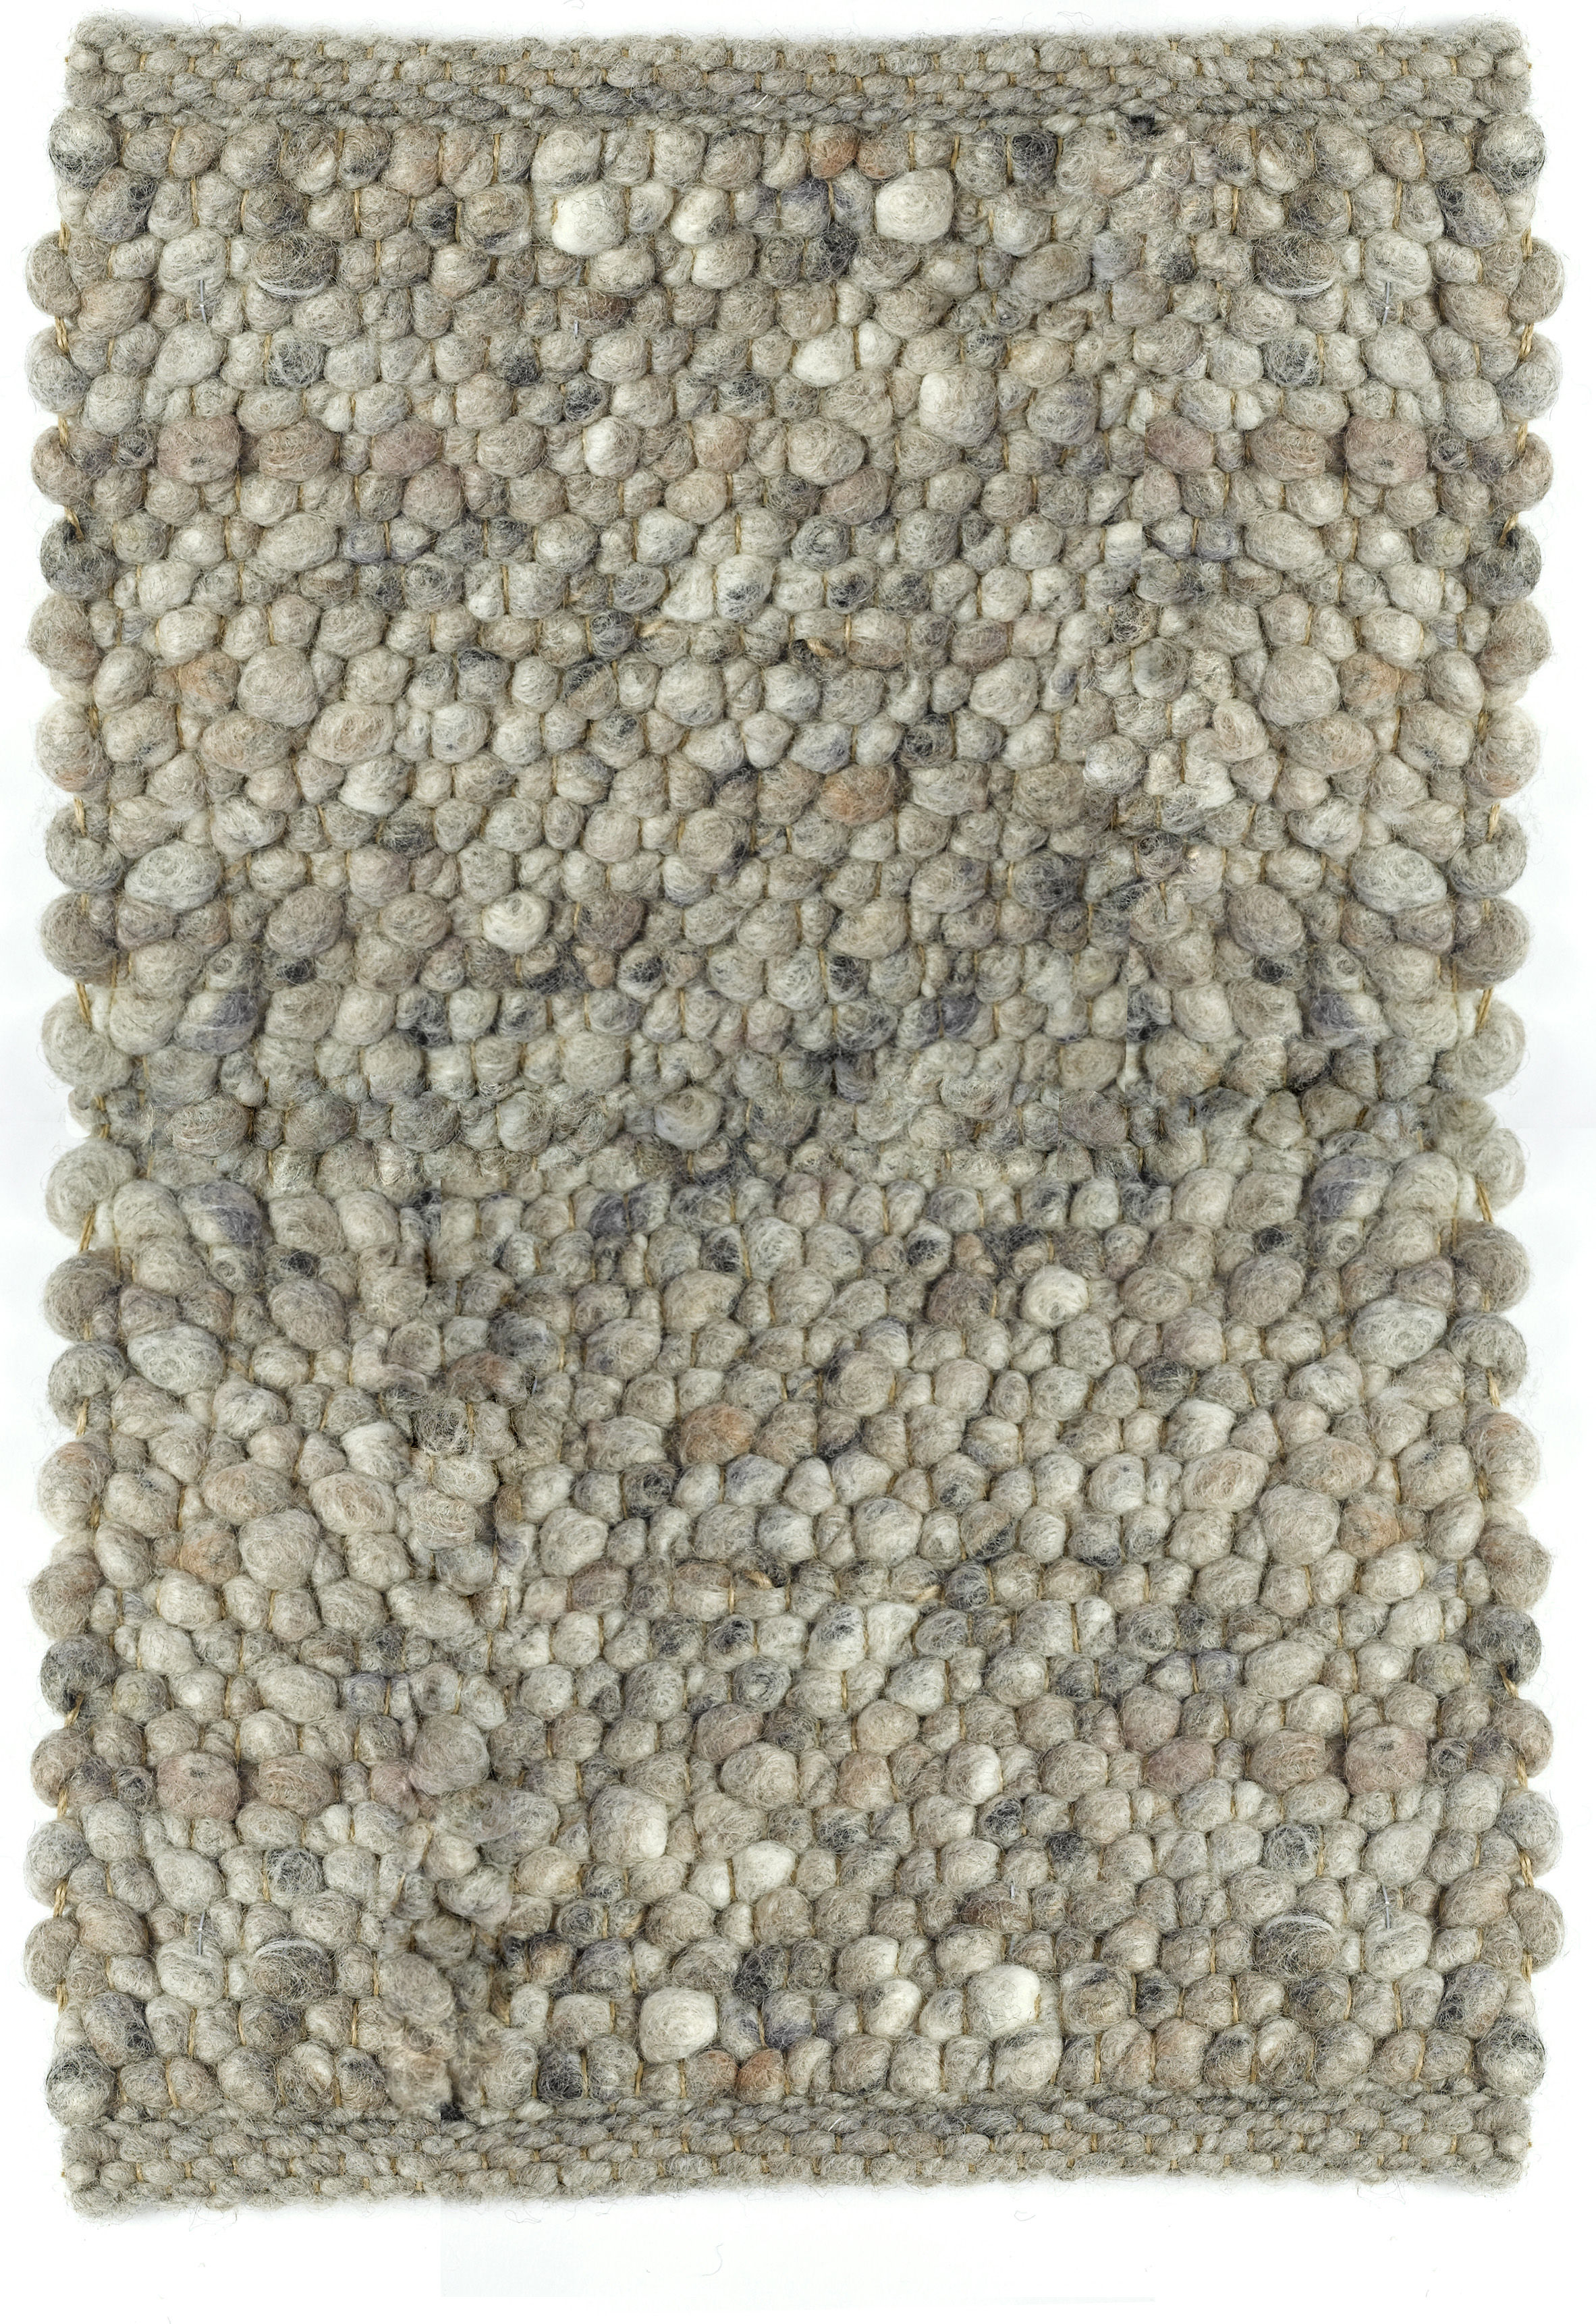 carpet pebbles teppich 200 x 240 cm 200 x 240 cm hellgrau by pols potten made in design. Black Bedroom Furniture Sets. Home Design Ideas